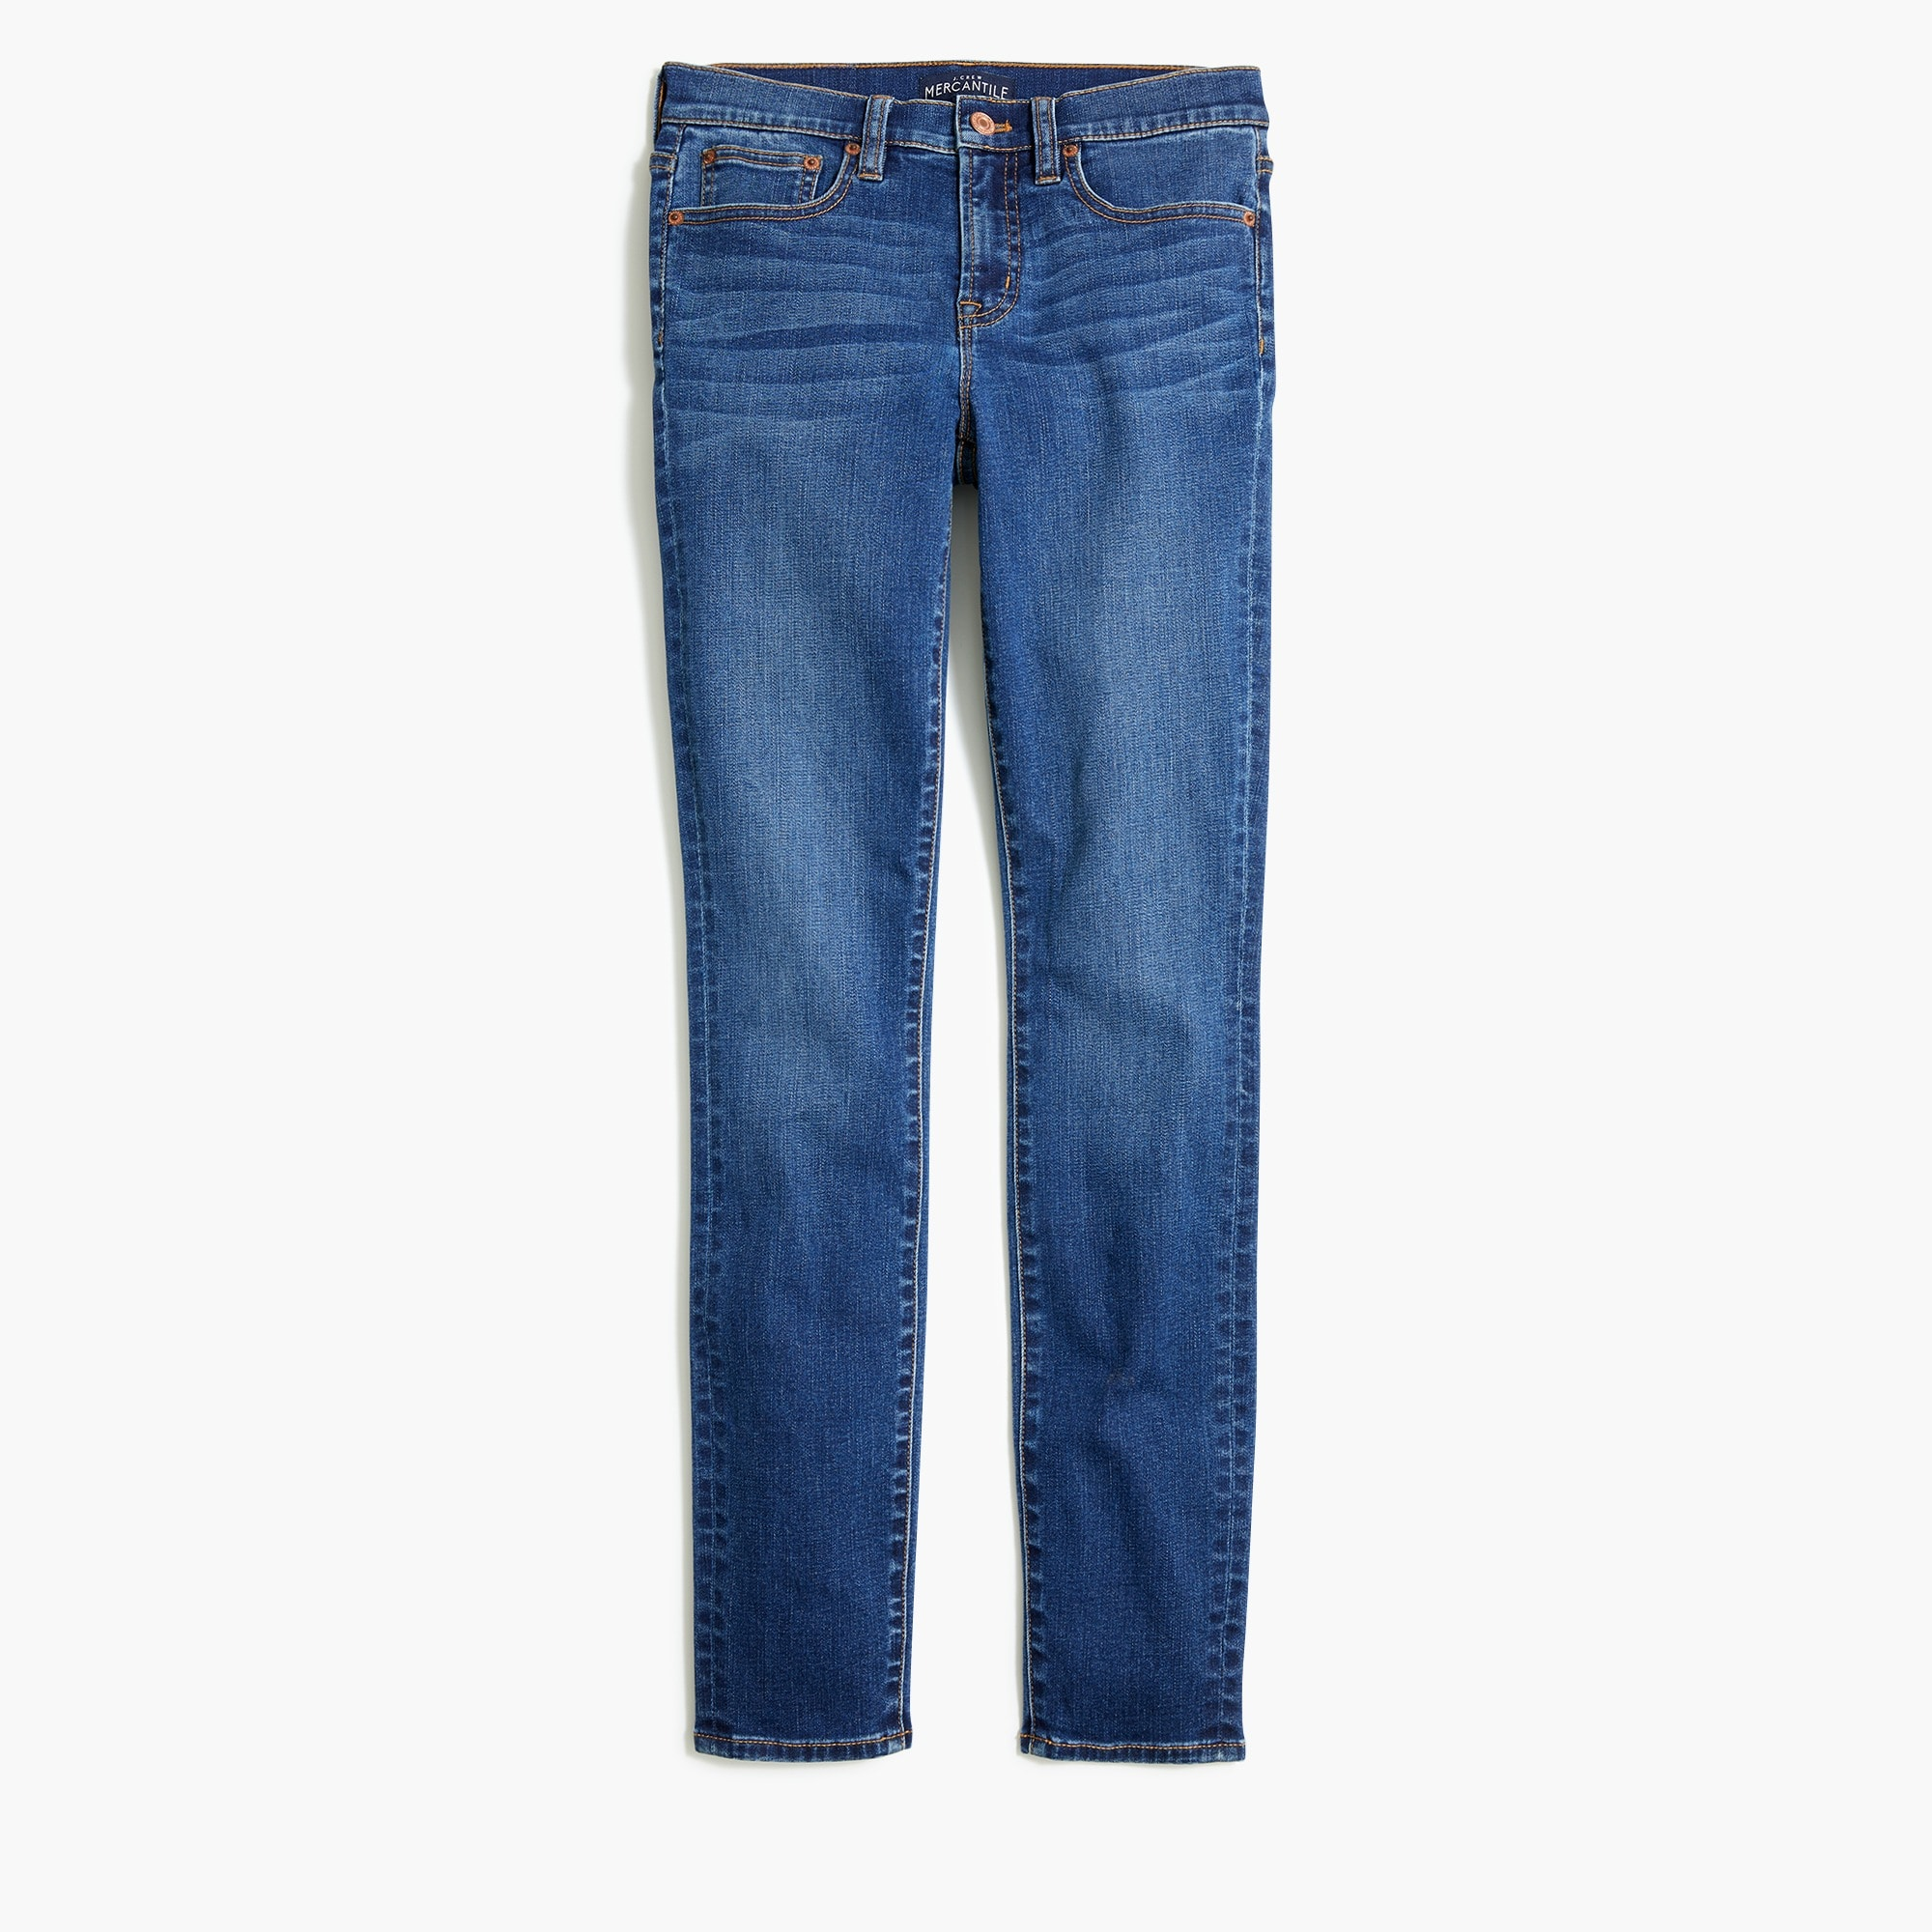 "8"" midrise skinny jean in rockaway wash with 26"" inseam : women mid rise skinny"